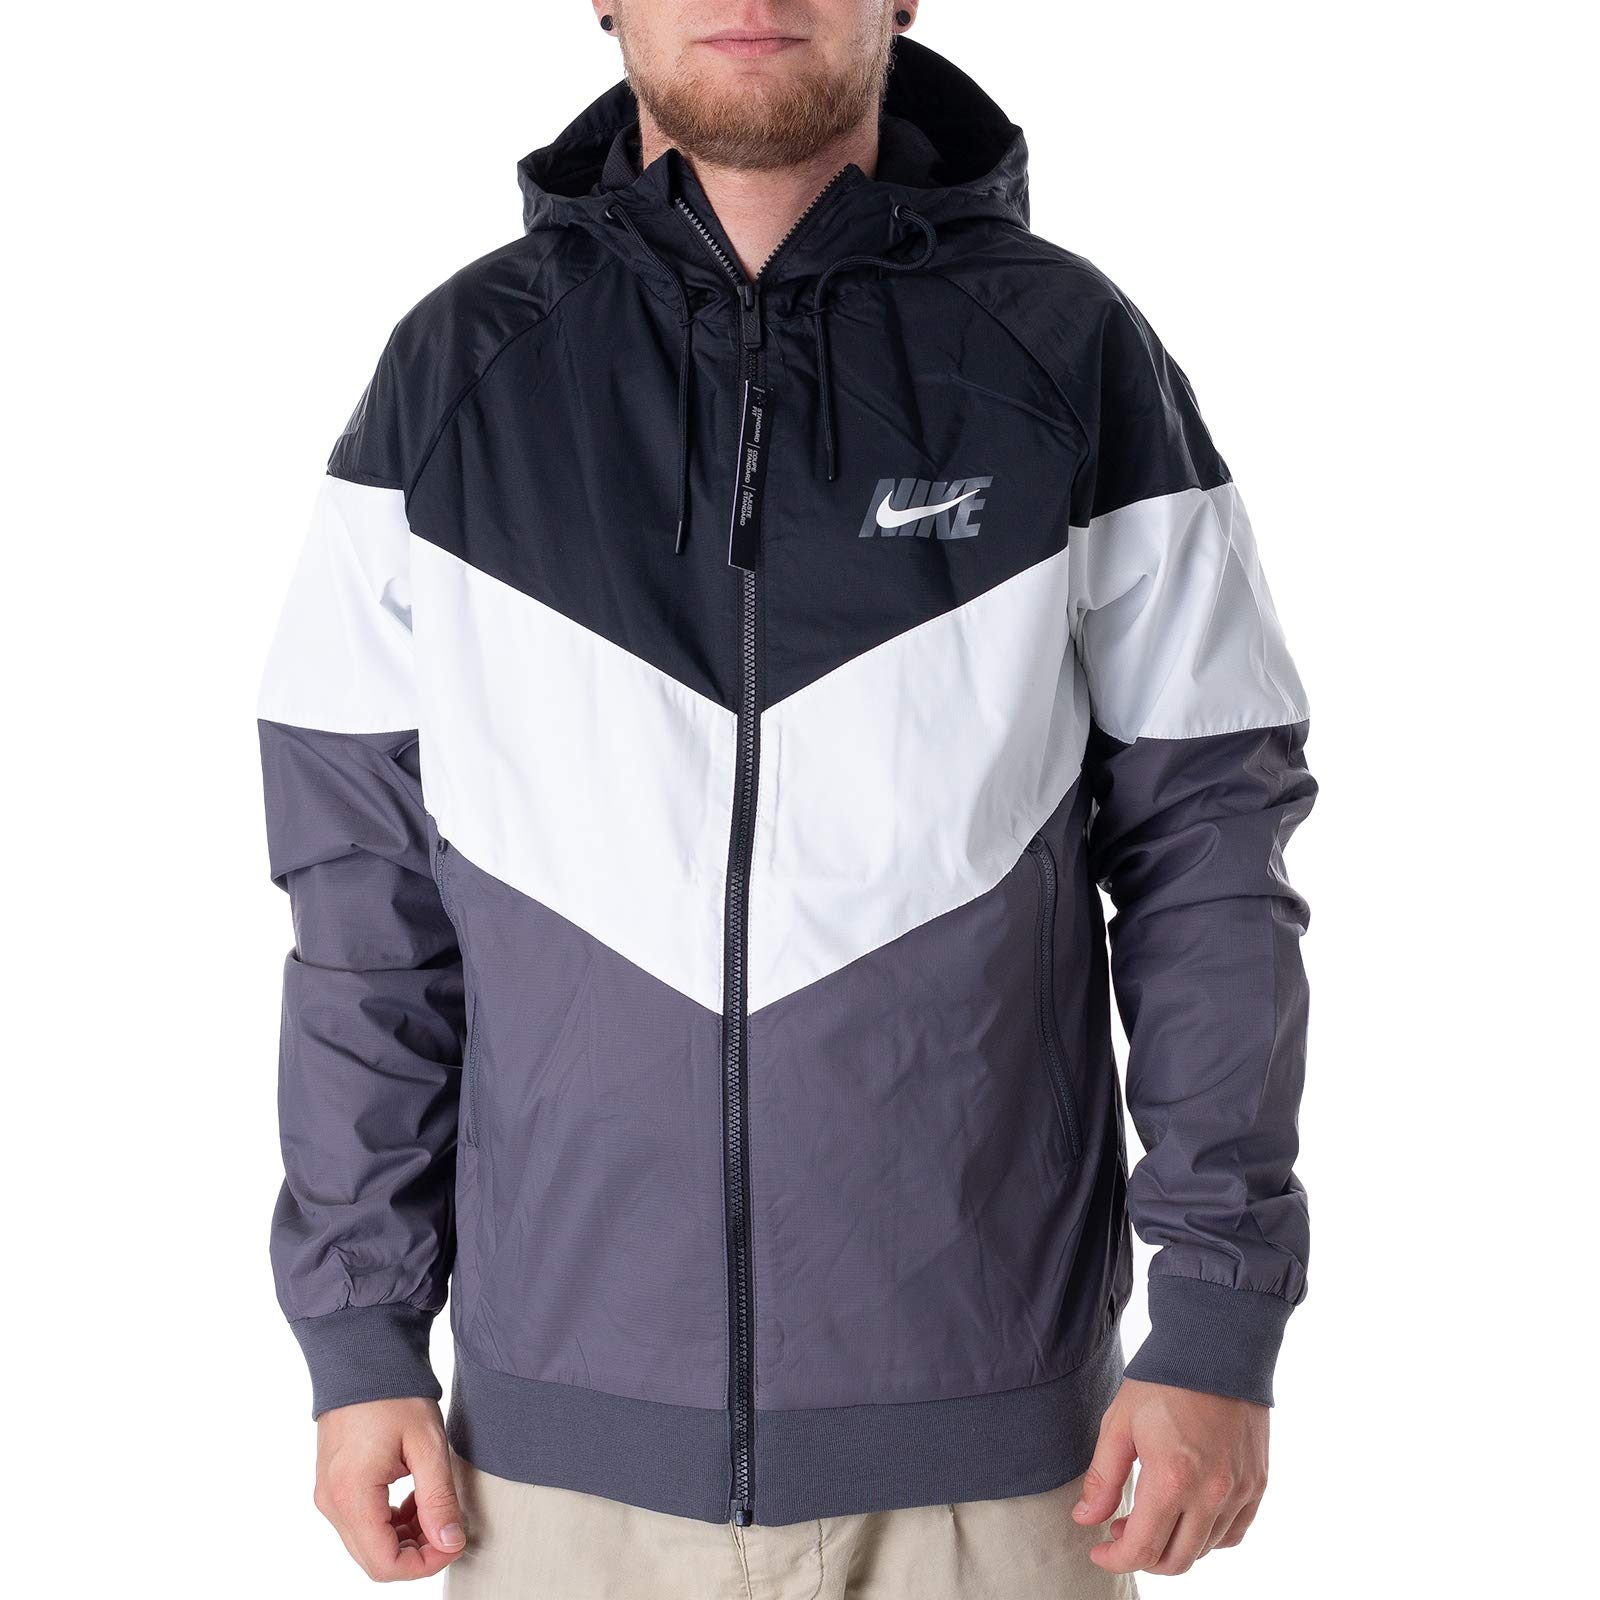 Nike Mens HD GX Windrunner Hooded Track Jacket Black/Summit White/Dark Grey AJ1396-010 Size Small by Nike (Image #1)